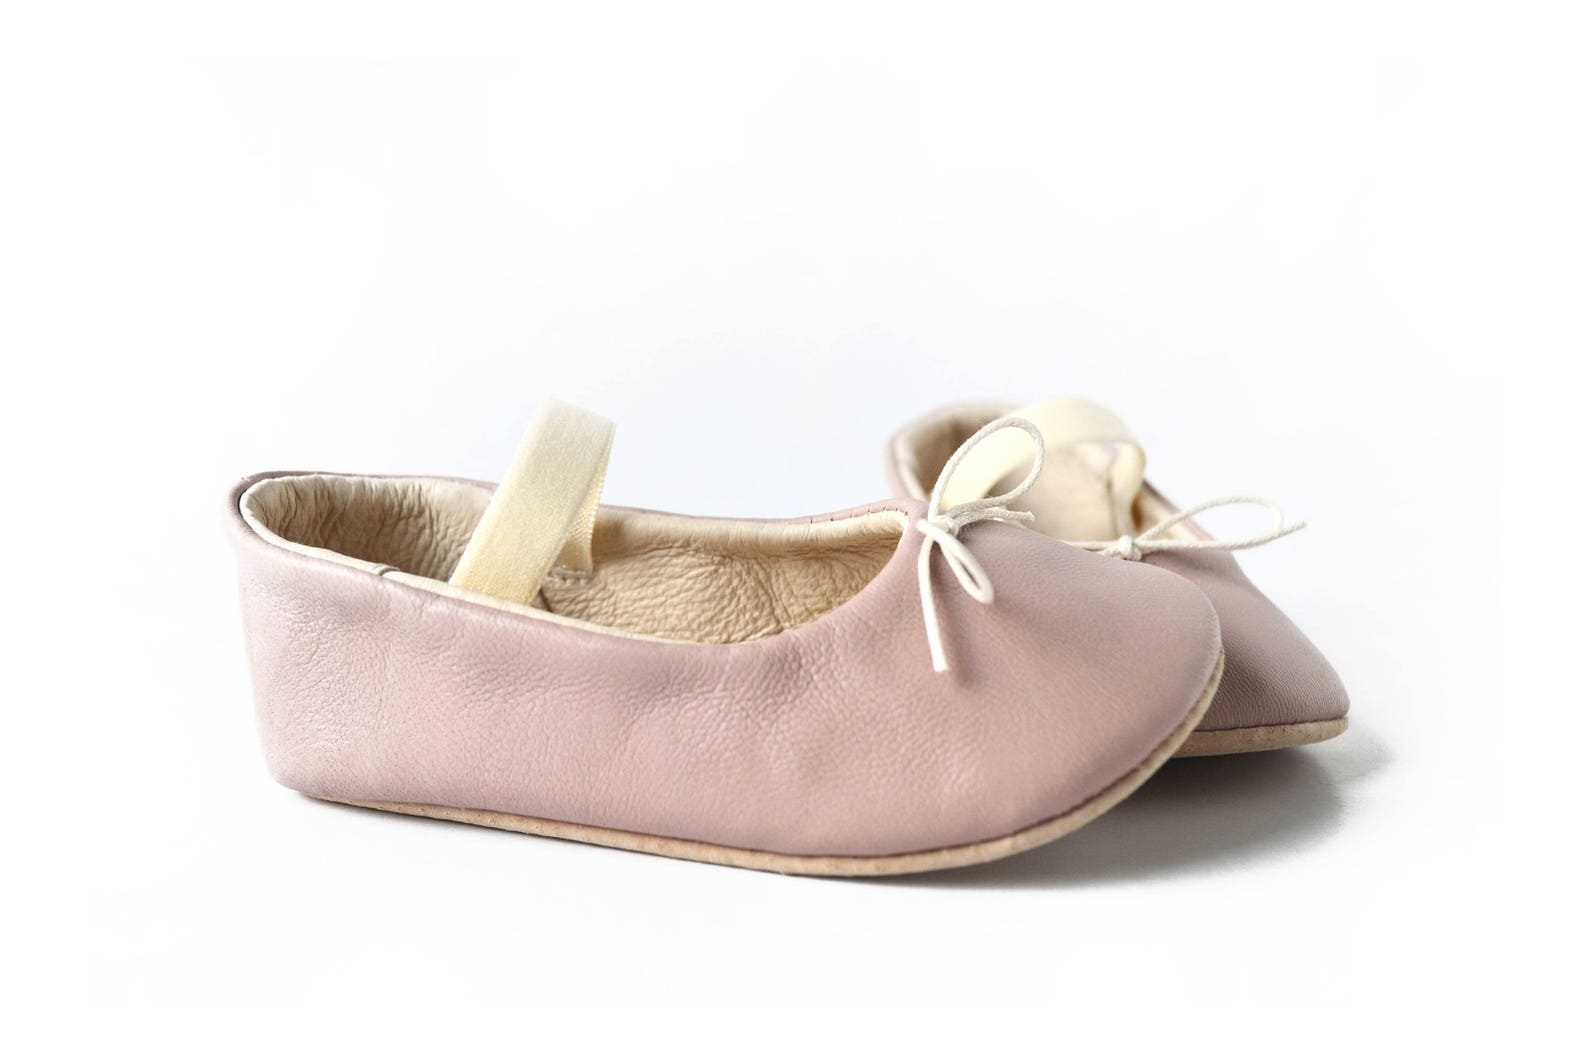 baby pink ballet slippers, baby girl ballerina shoes, baby girl leather shoes, baby ballet shoes, baby shower gift, baby girl dr